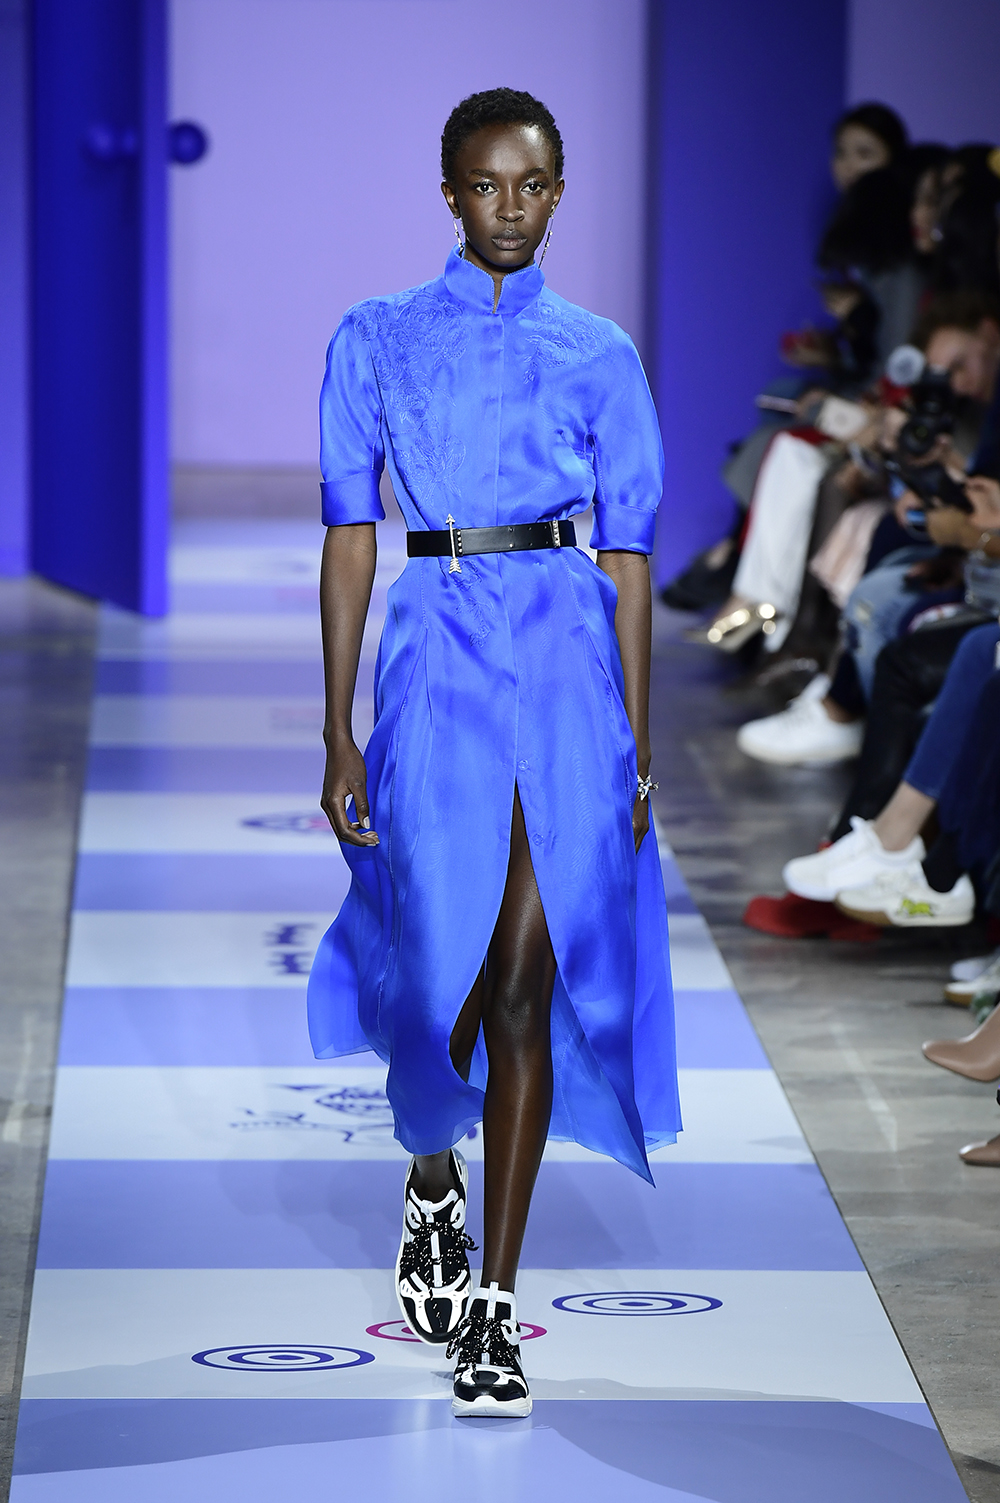 Shiatzy Chen Paris Fashion Week Spring Summer 2019 Runway Collection #SS19 #pfw #parisfashionweek #paris #parisianstyle #asiandesigner #80sstyle #fashionblogger #fashionblog #streetfashion #spring2019 #summer2019 #runway #runwaycollectiohn #shiatzychen #fashion #trends